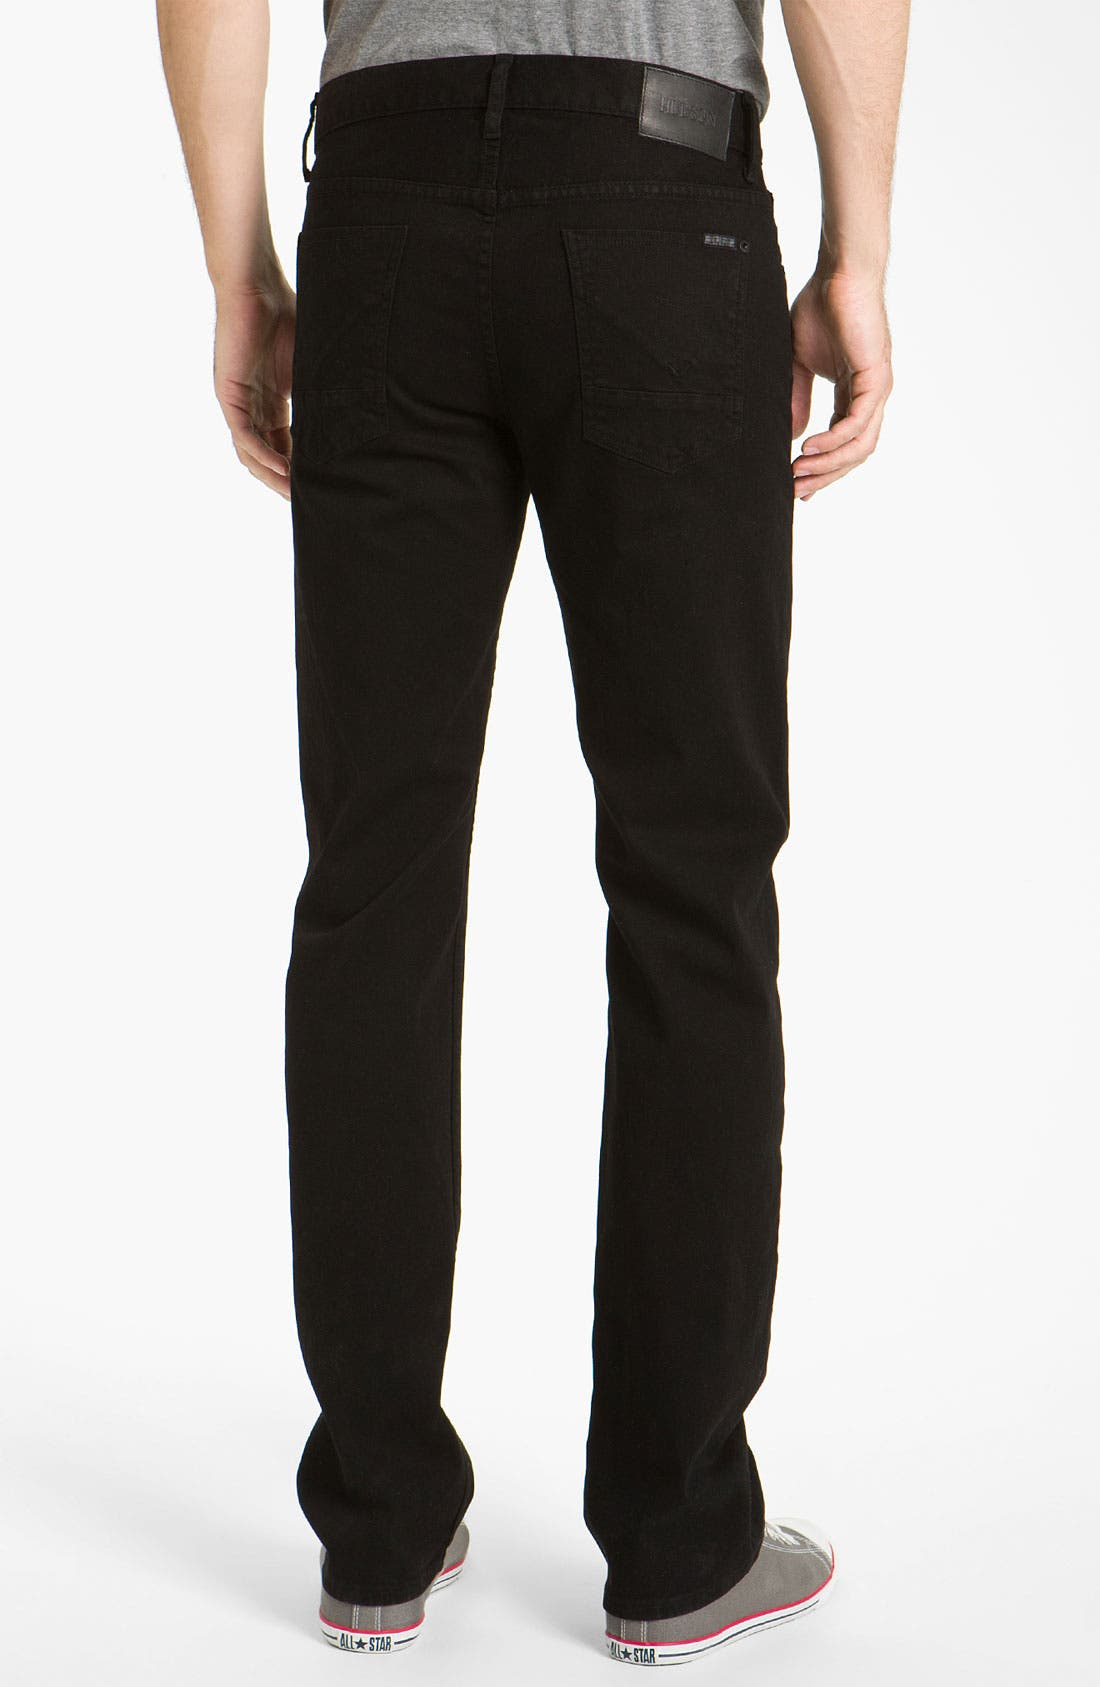 Alternate Image 1 Selected - Hudson Jeans 'Buckley Athletic' Straight Leg Jeans (Jet Black)